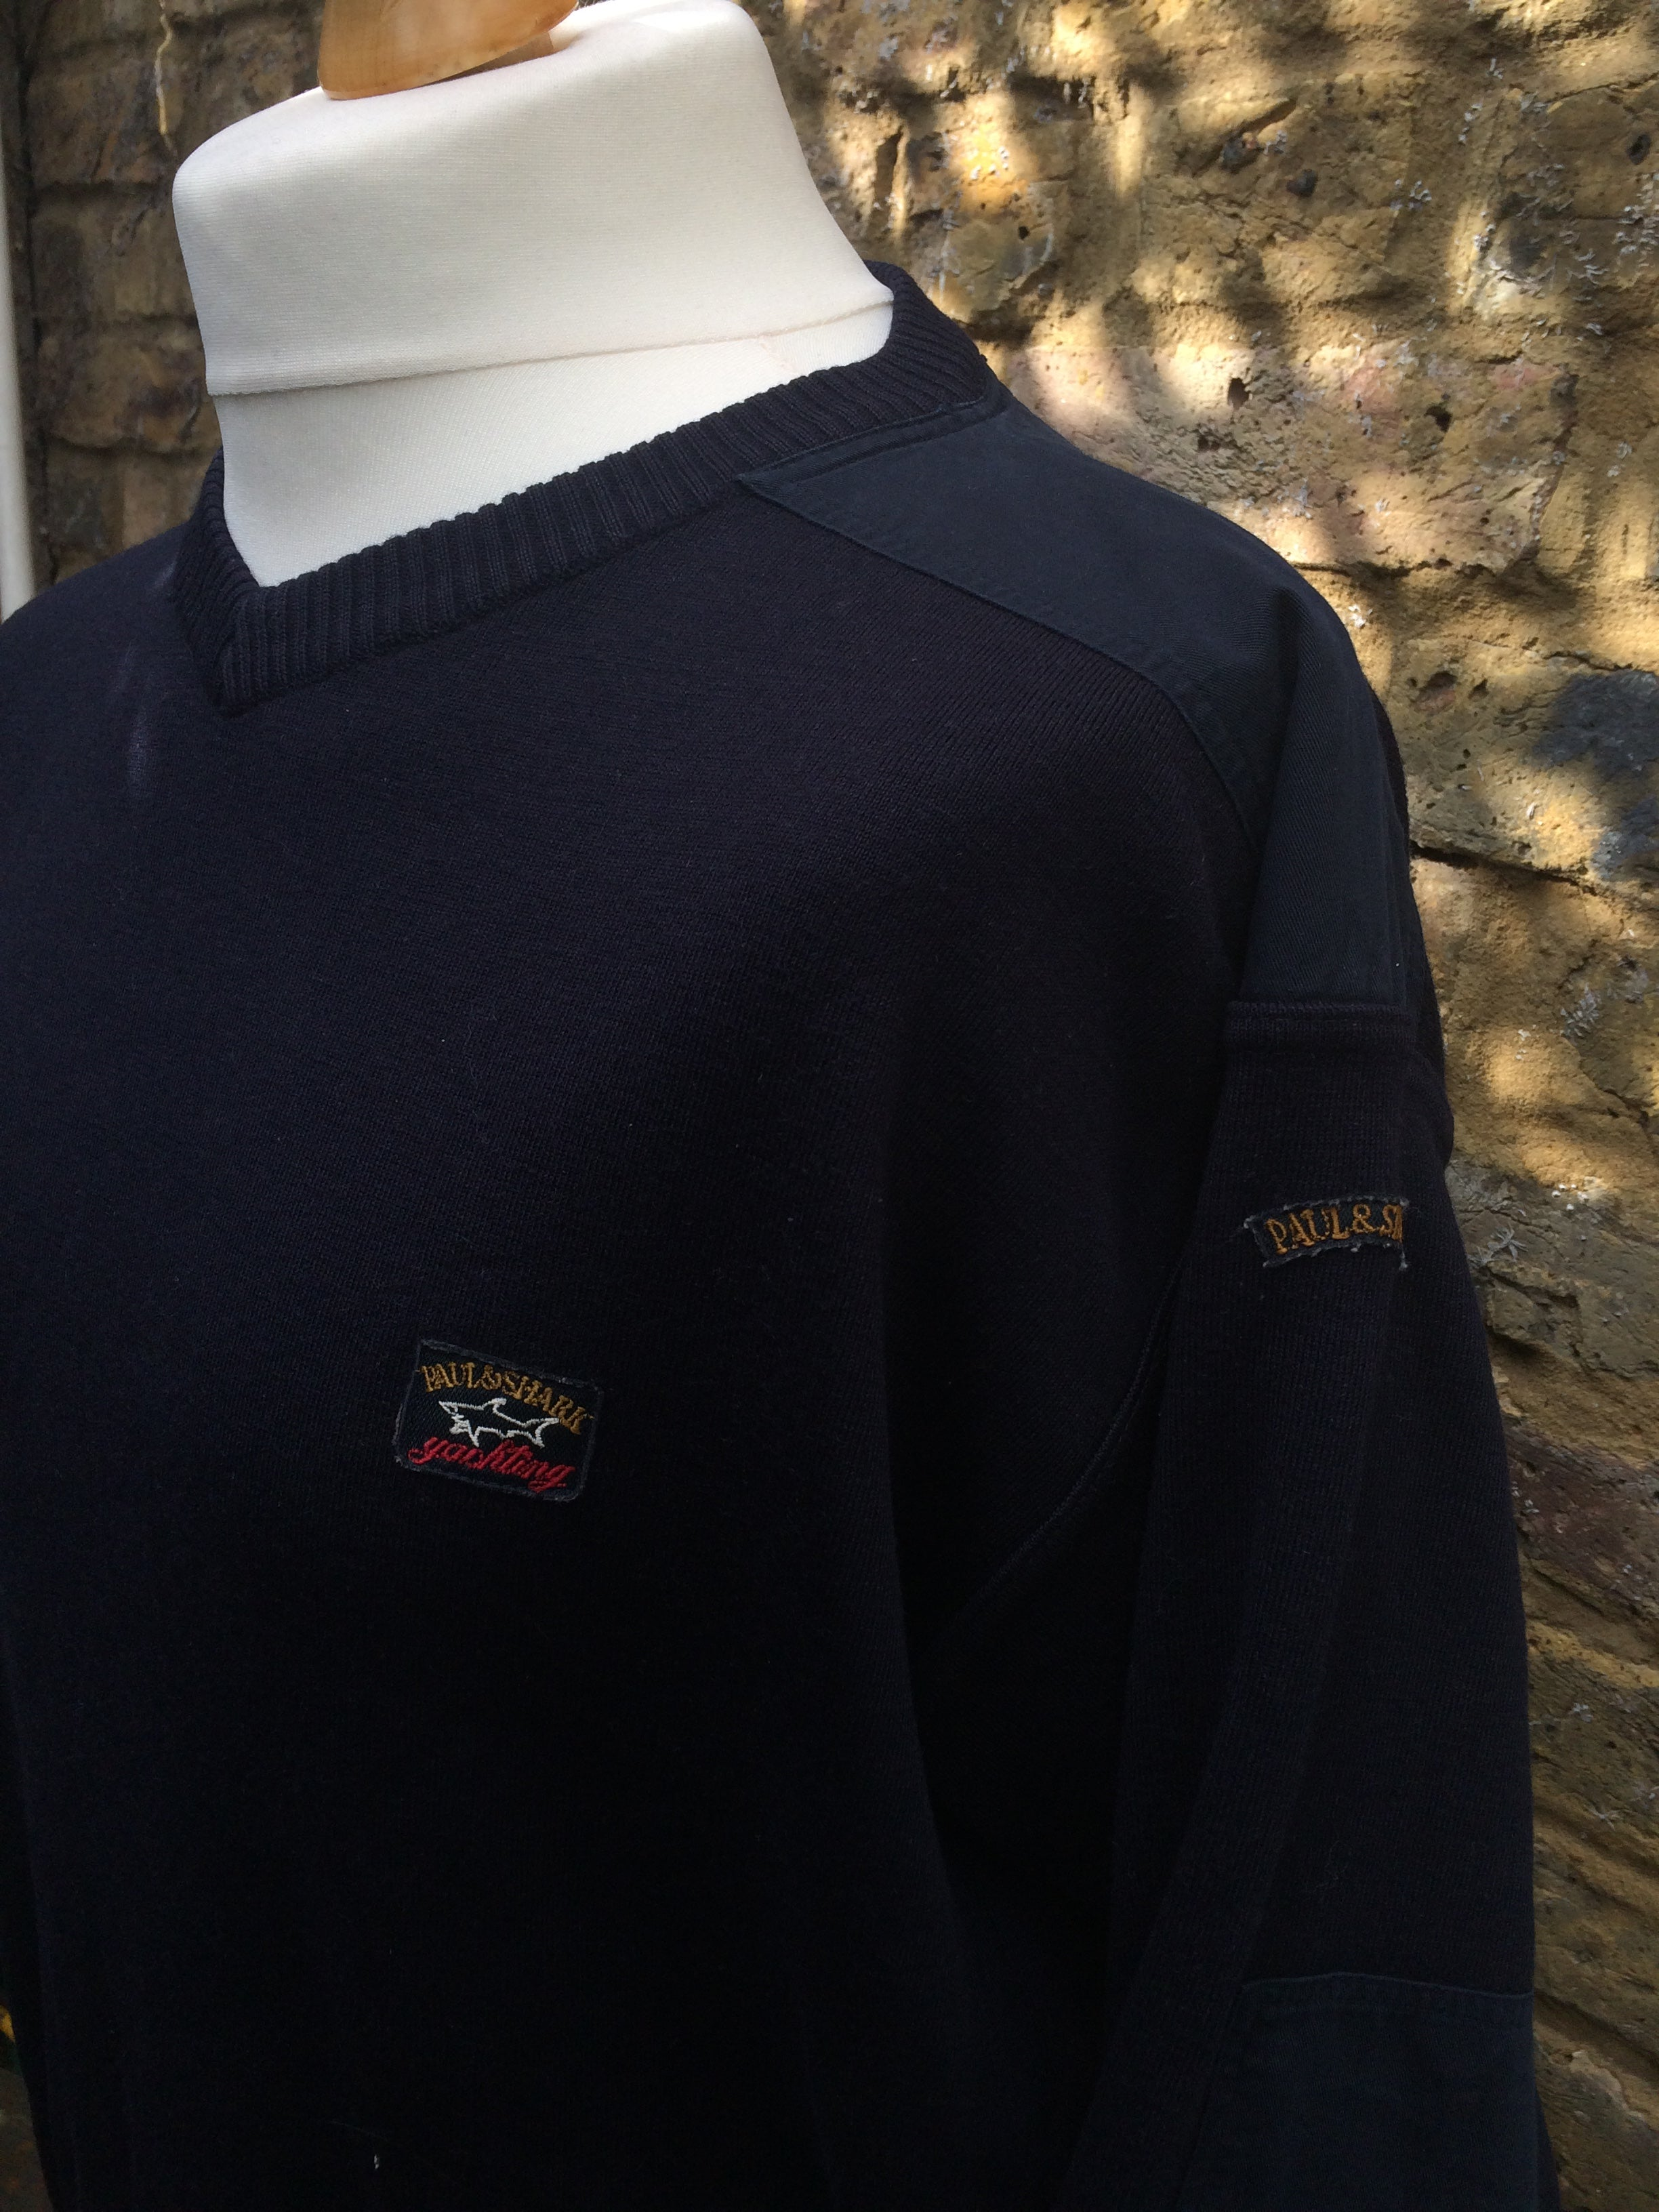 a basso prezzo 8e4f6 4956d Vintage Navy Wool Paul & Shark Pullover (M) – Column11